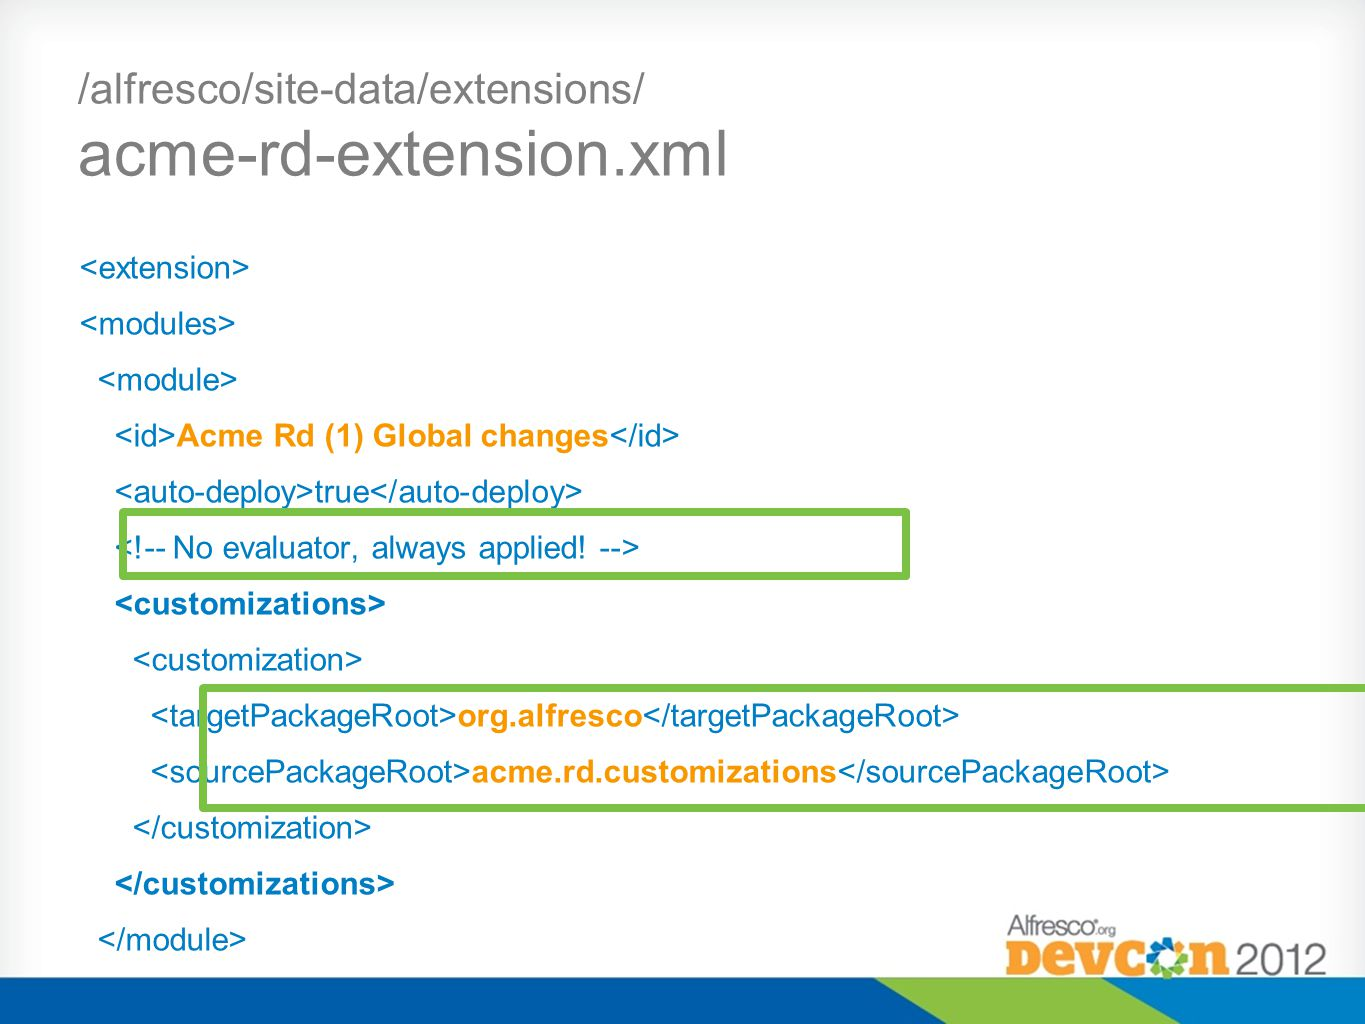 /alfresco/site-data/extensions/ acme-rd-extension.xml